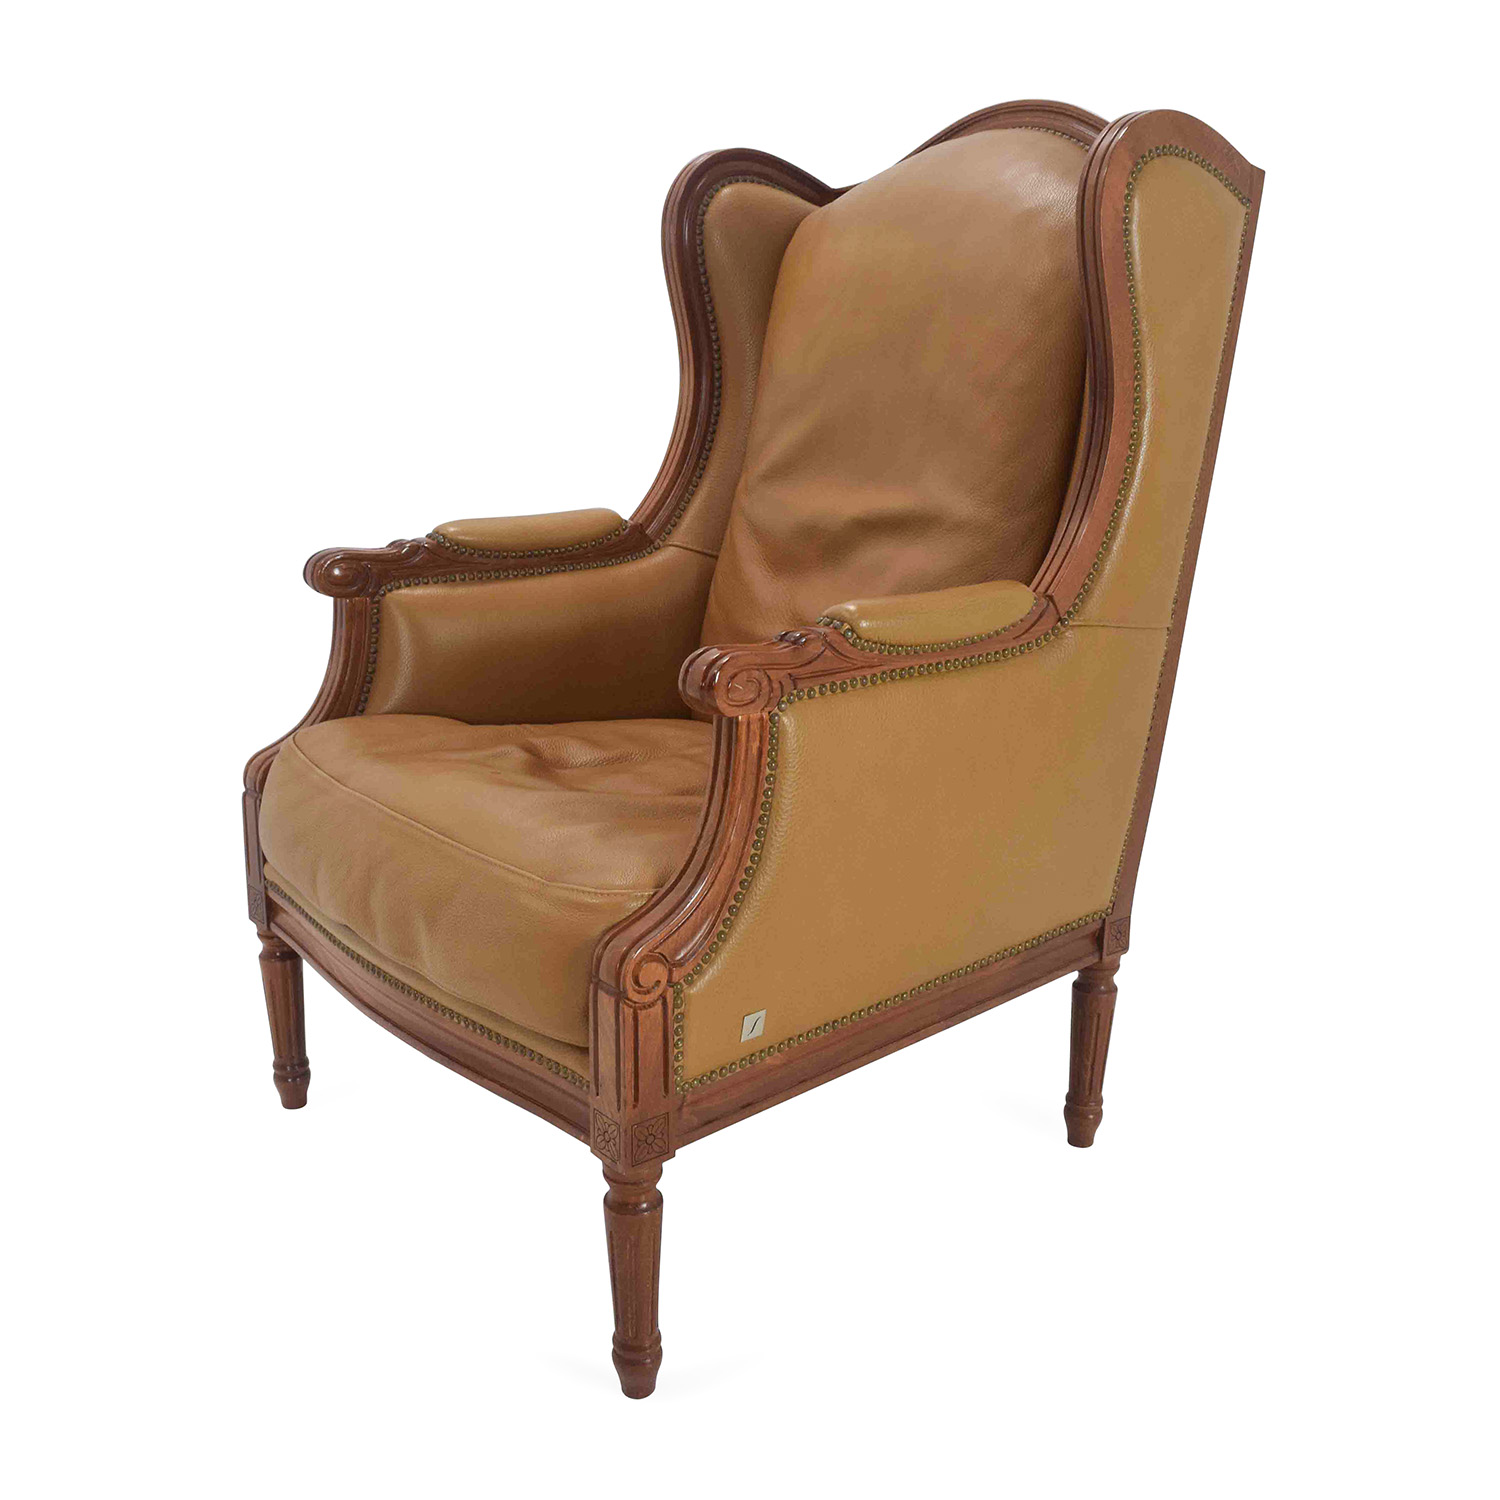 62 off antique antique leather chairs chairs for Antique leather chairs